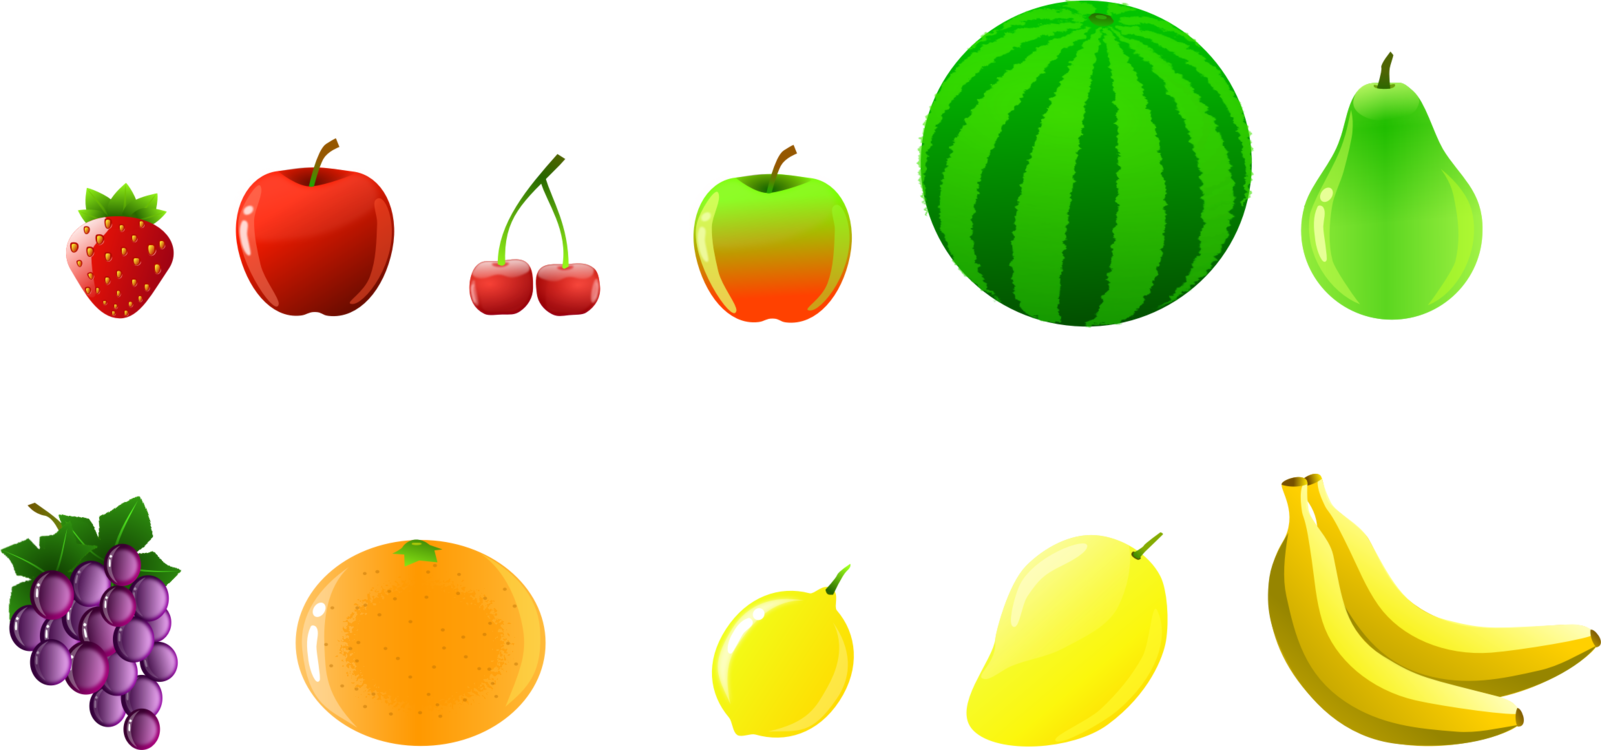 Accessory Fruit,Vegetarian Food,Commodity